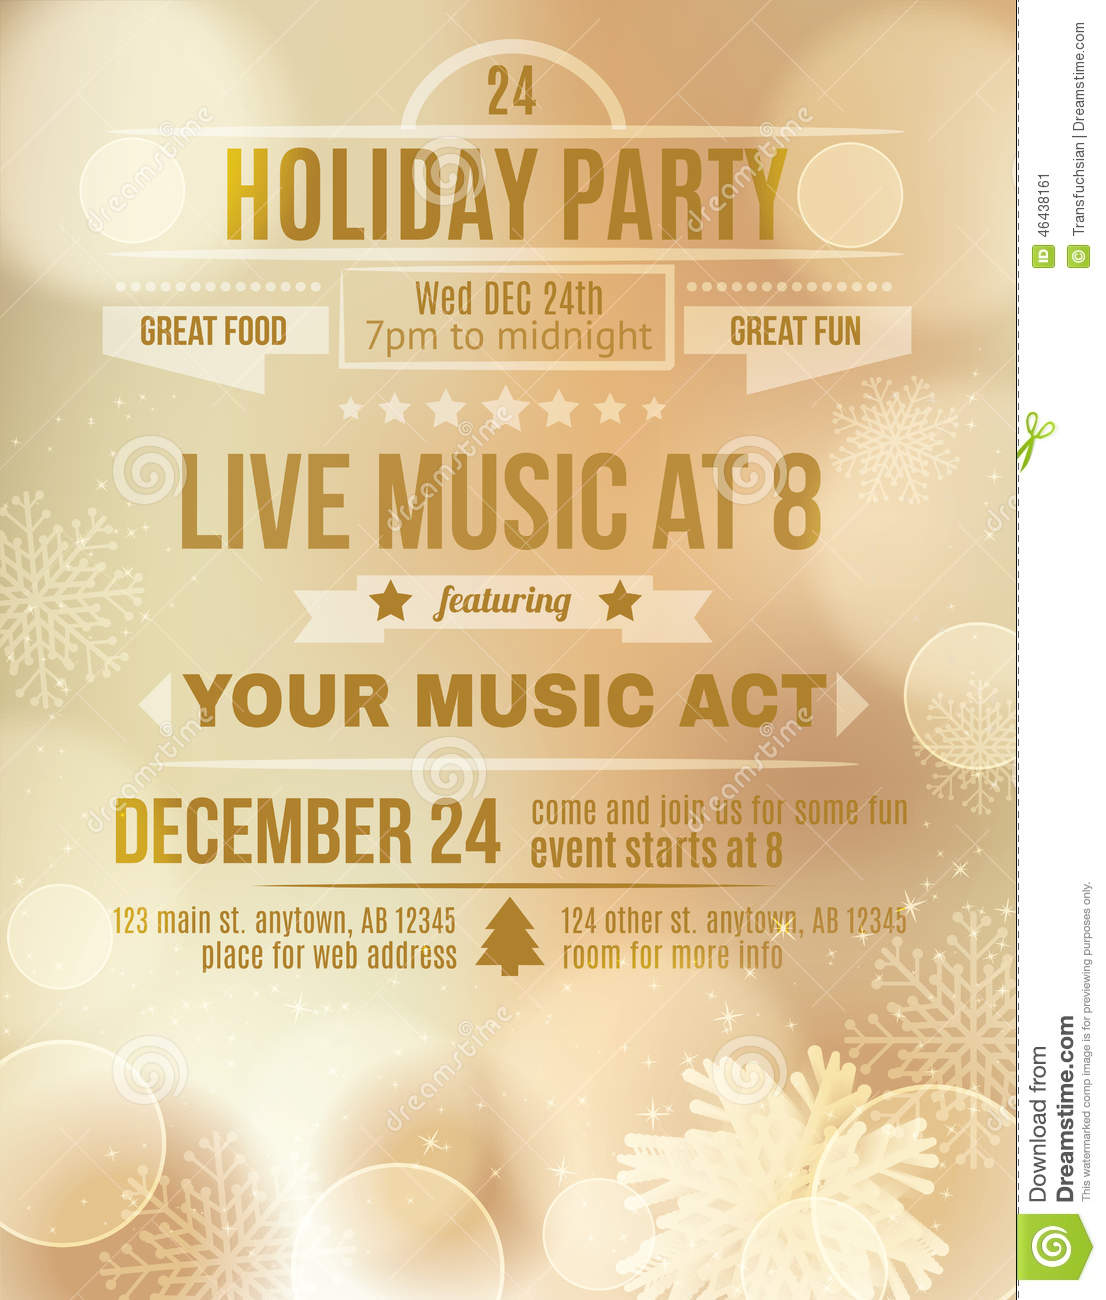 Soft Gold Holiday Party Invitation Flyer Stock Vector - Illustration ...